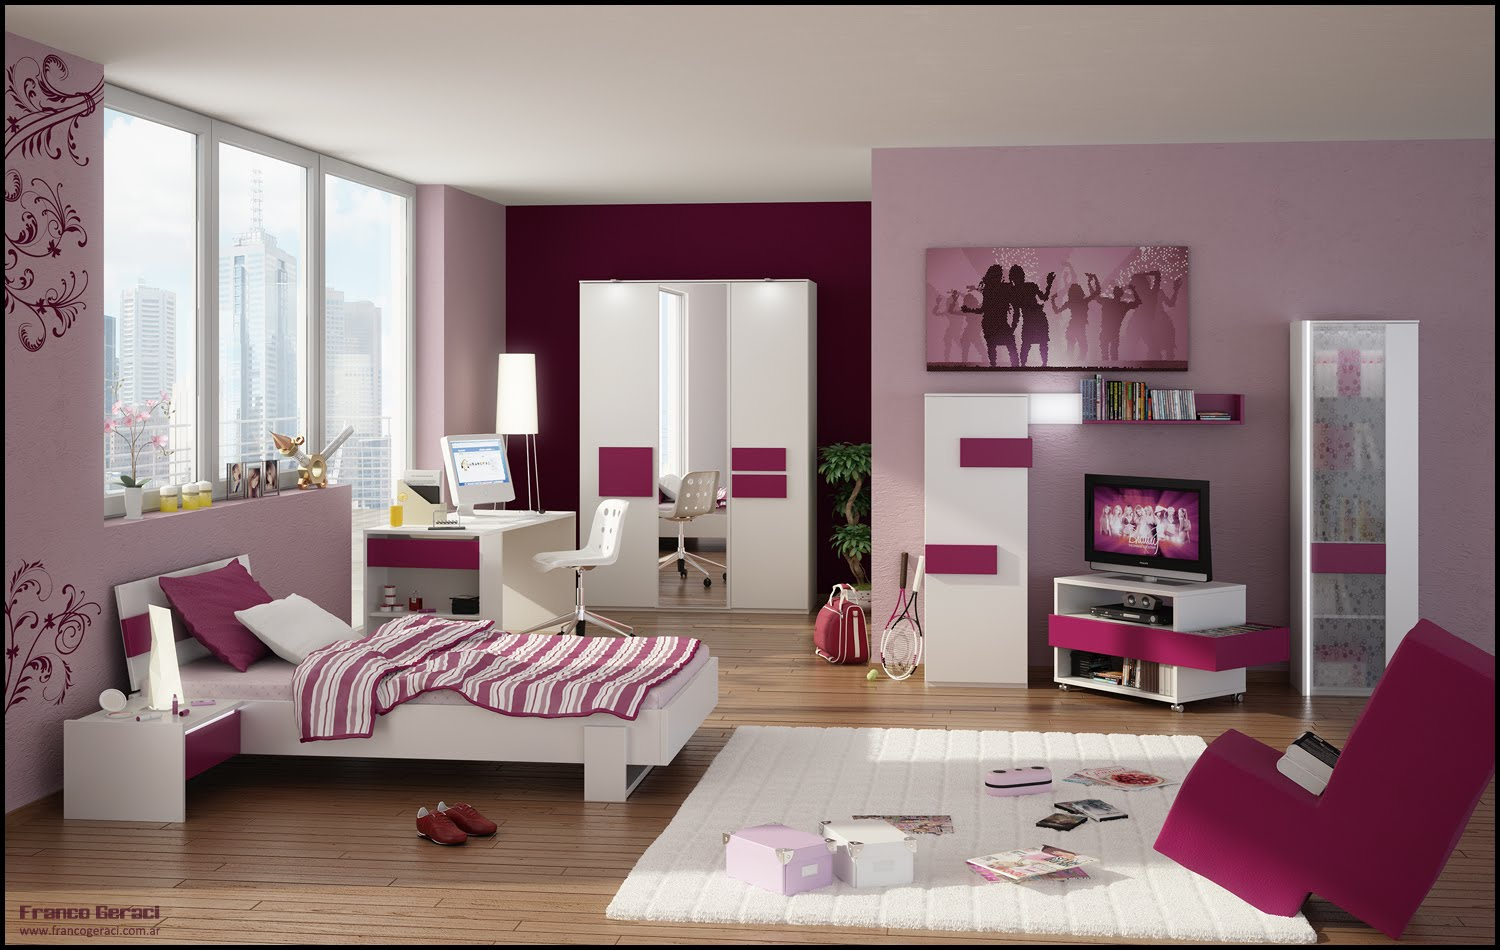 arti 39 s dream themes teenage room ideas for girls